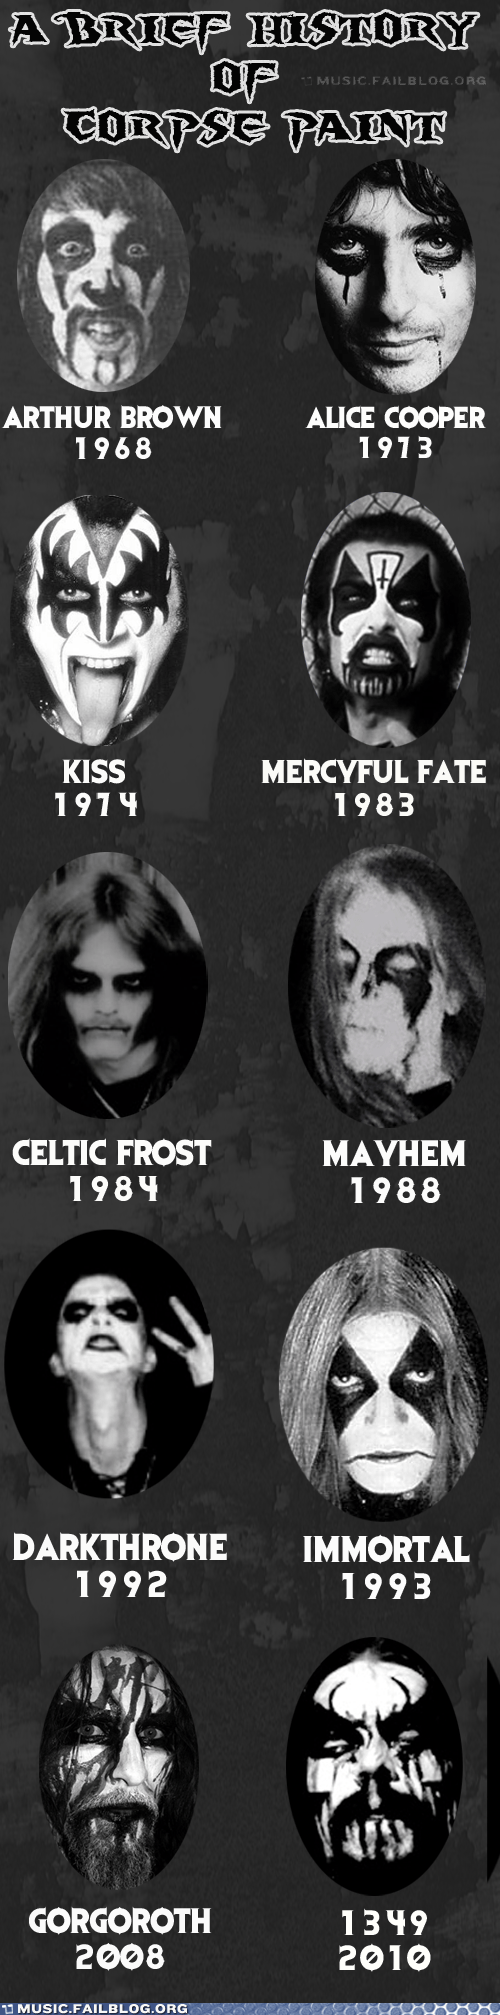 alice cooper corpse paint immortal KISS metal - 6004785920